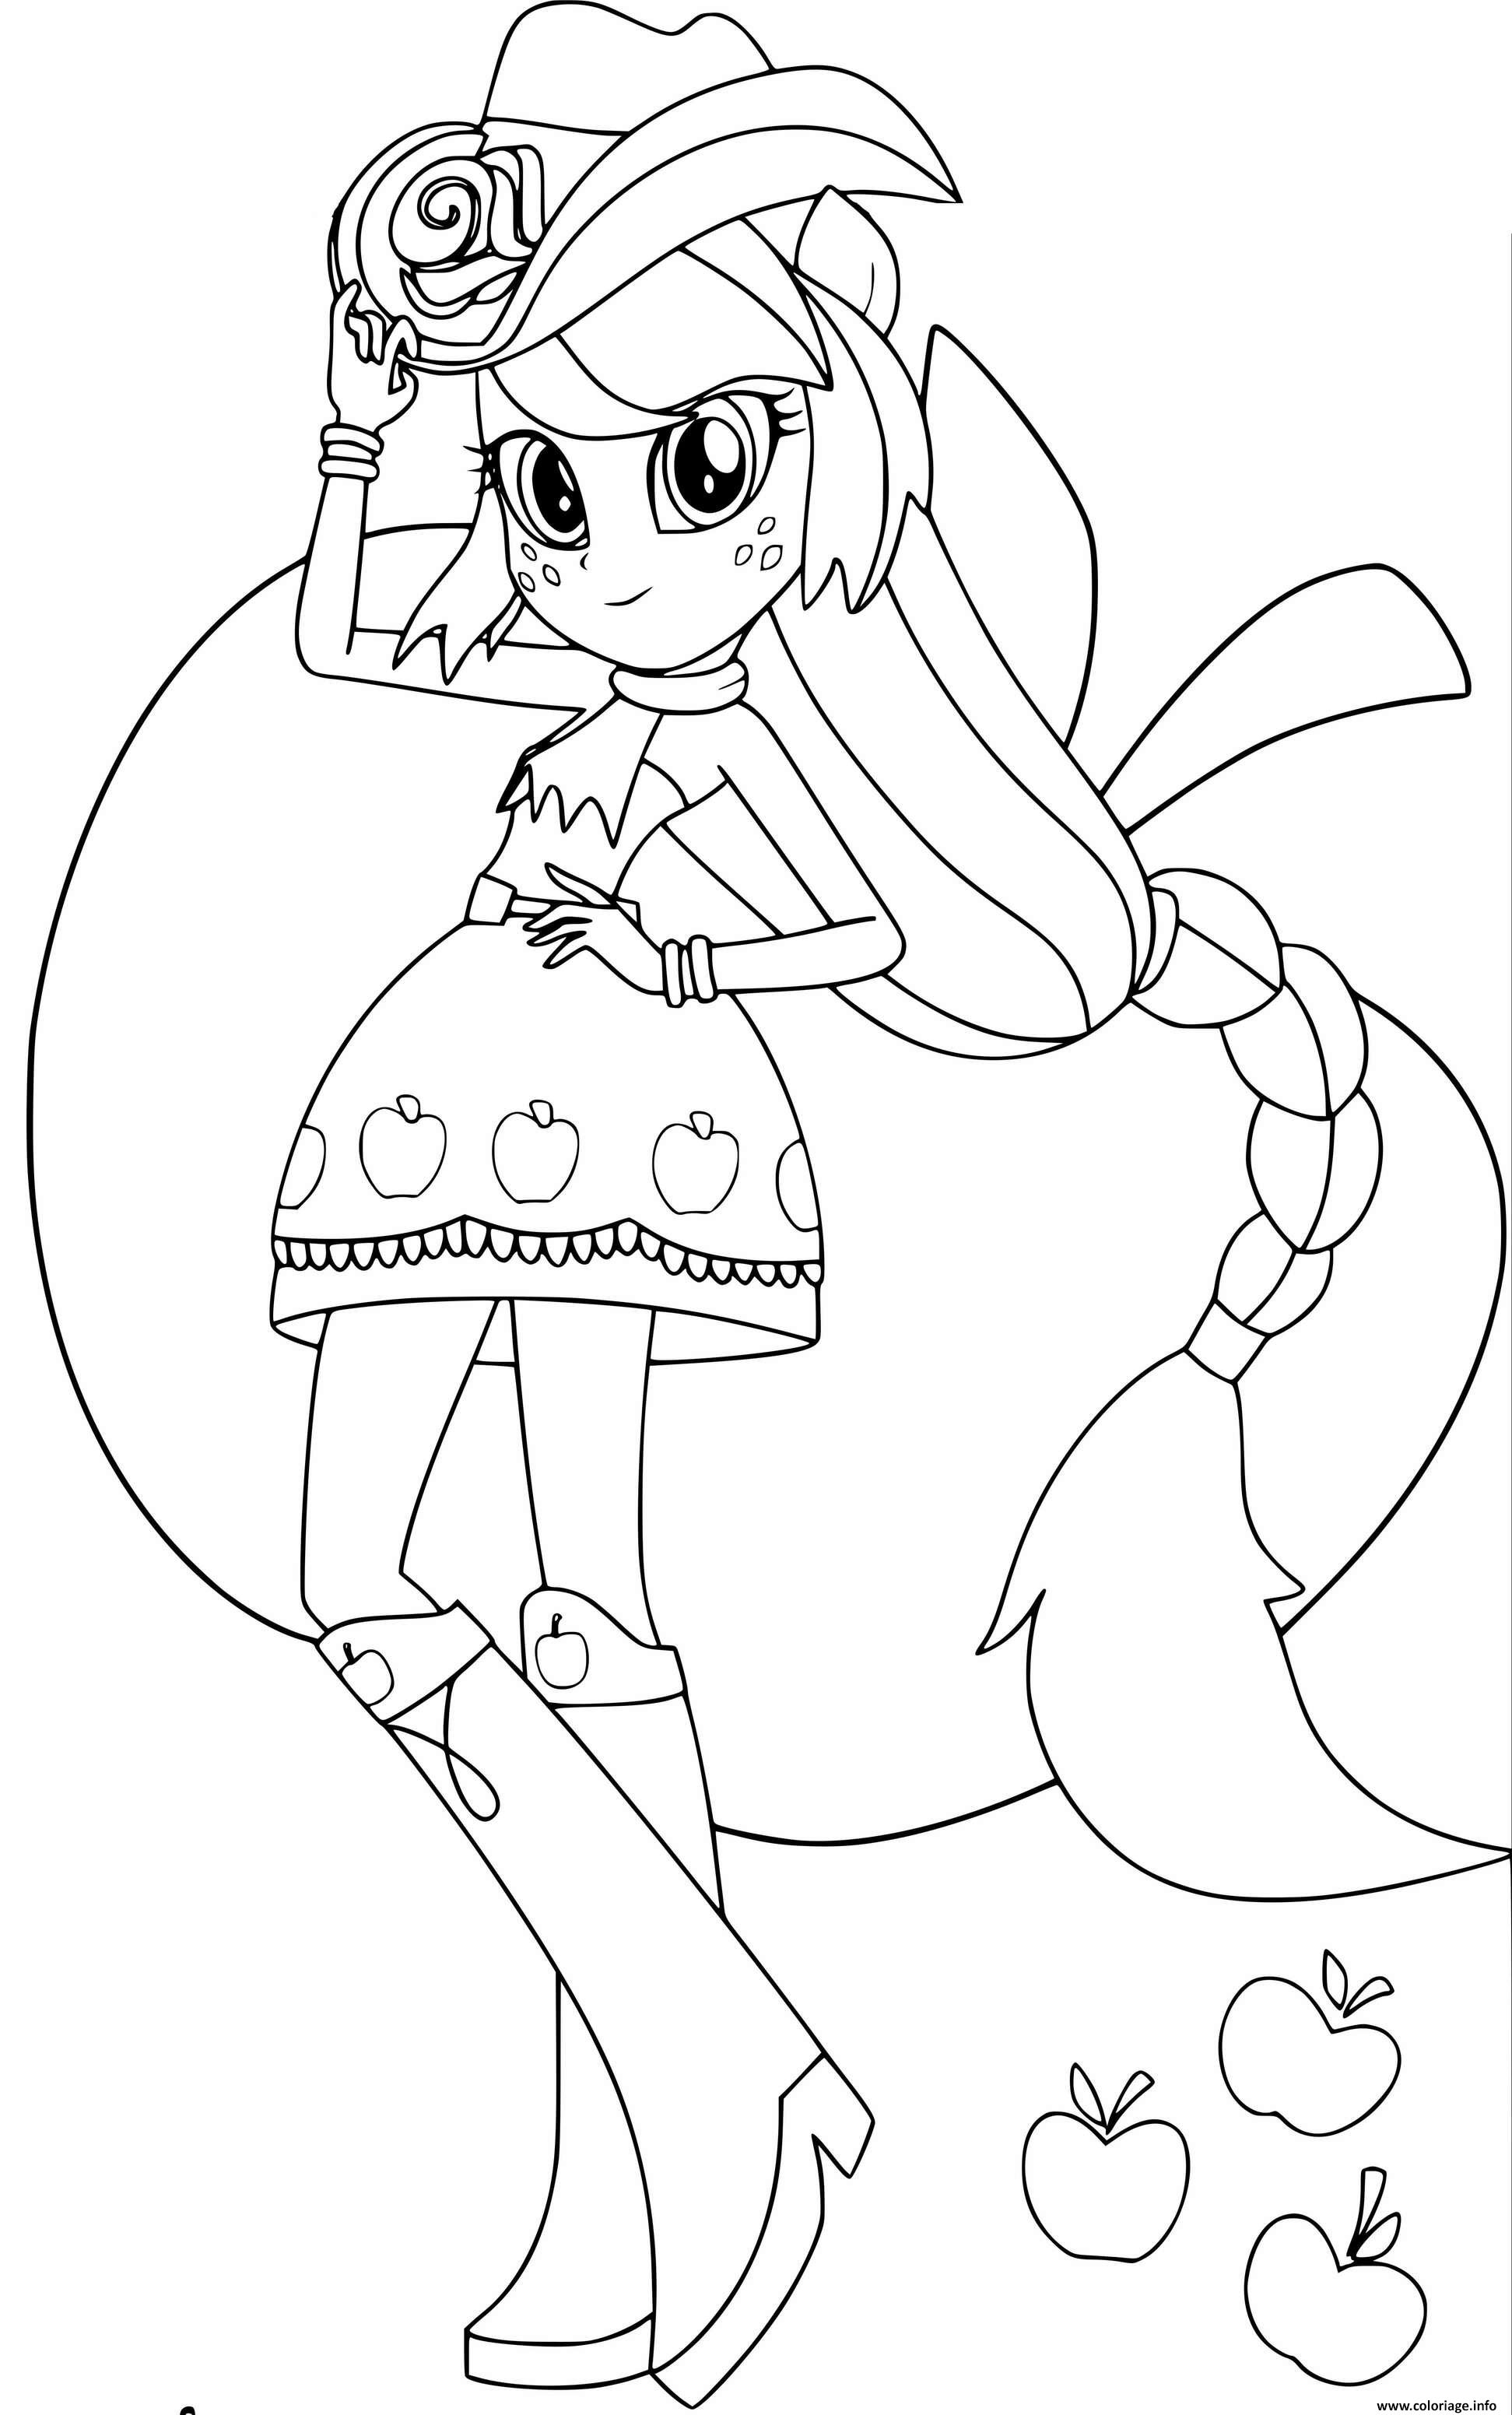 applejack equestria girls coloring pages nice coloring page applejack that you must know youre in pages applejack girls coloring equestria